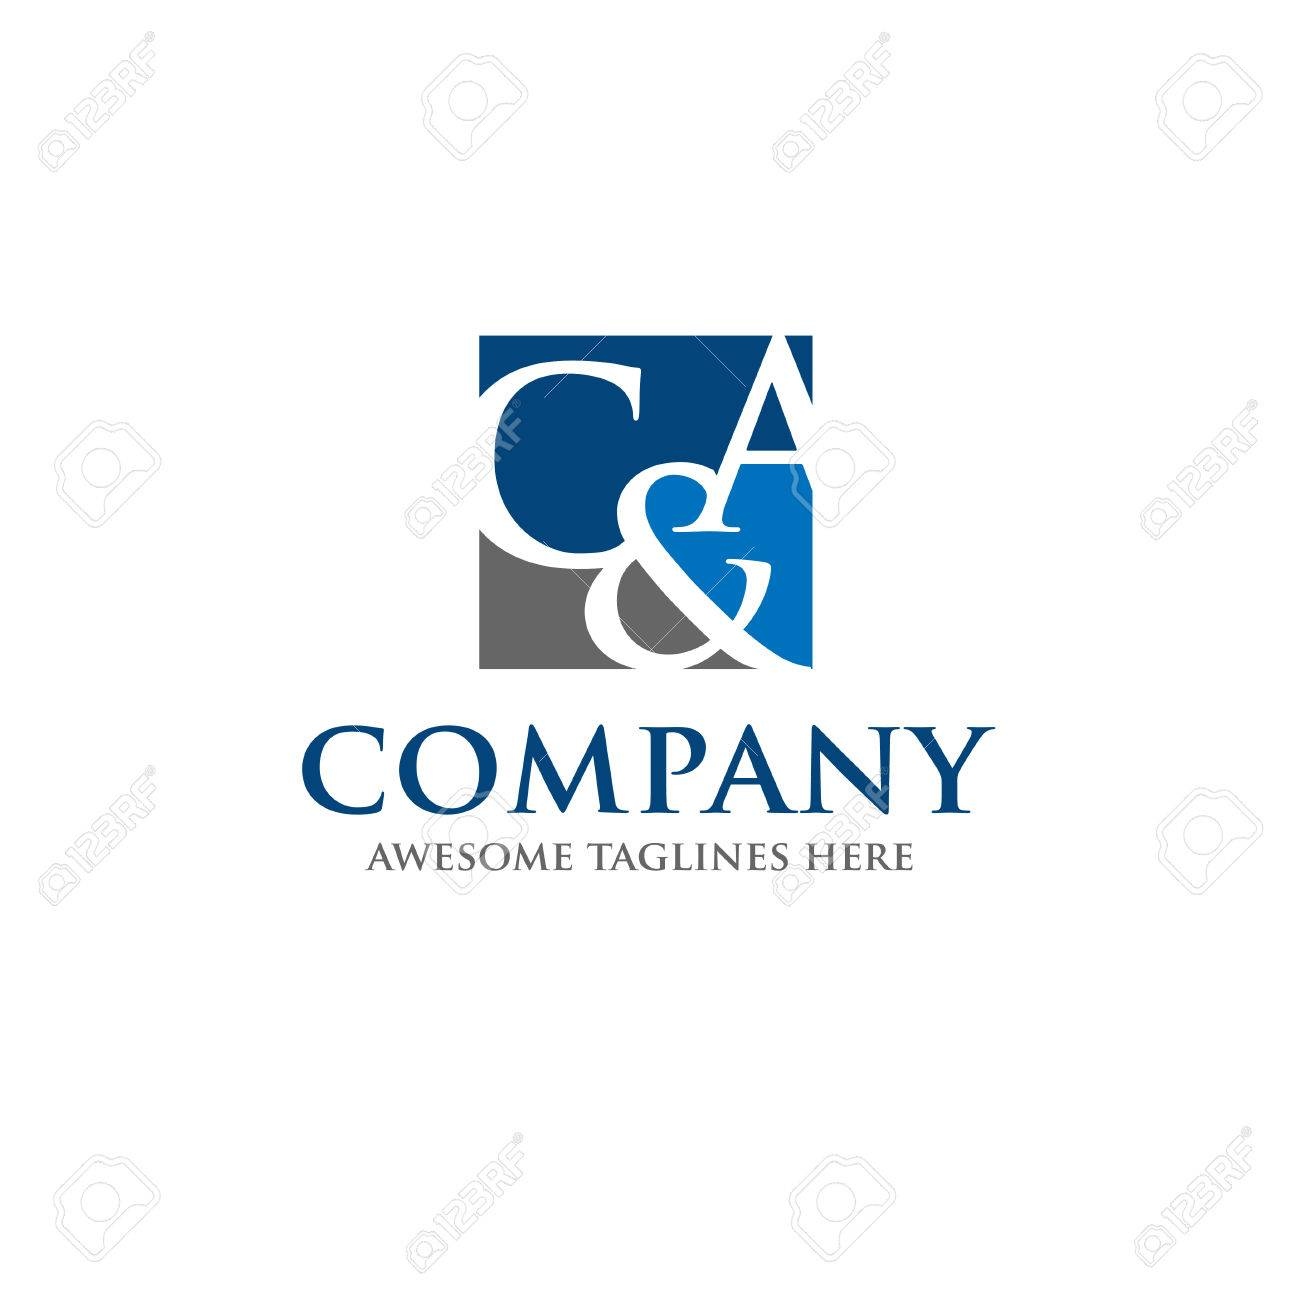 C A C And A Letter Logo Design Vector Illustration Template Creative Letter C A C And A Logo Royalty Free Cliparts Vetores E Ilustracoes Stock Image 78450621